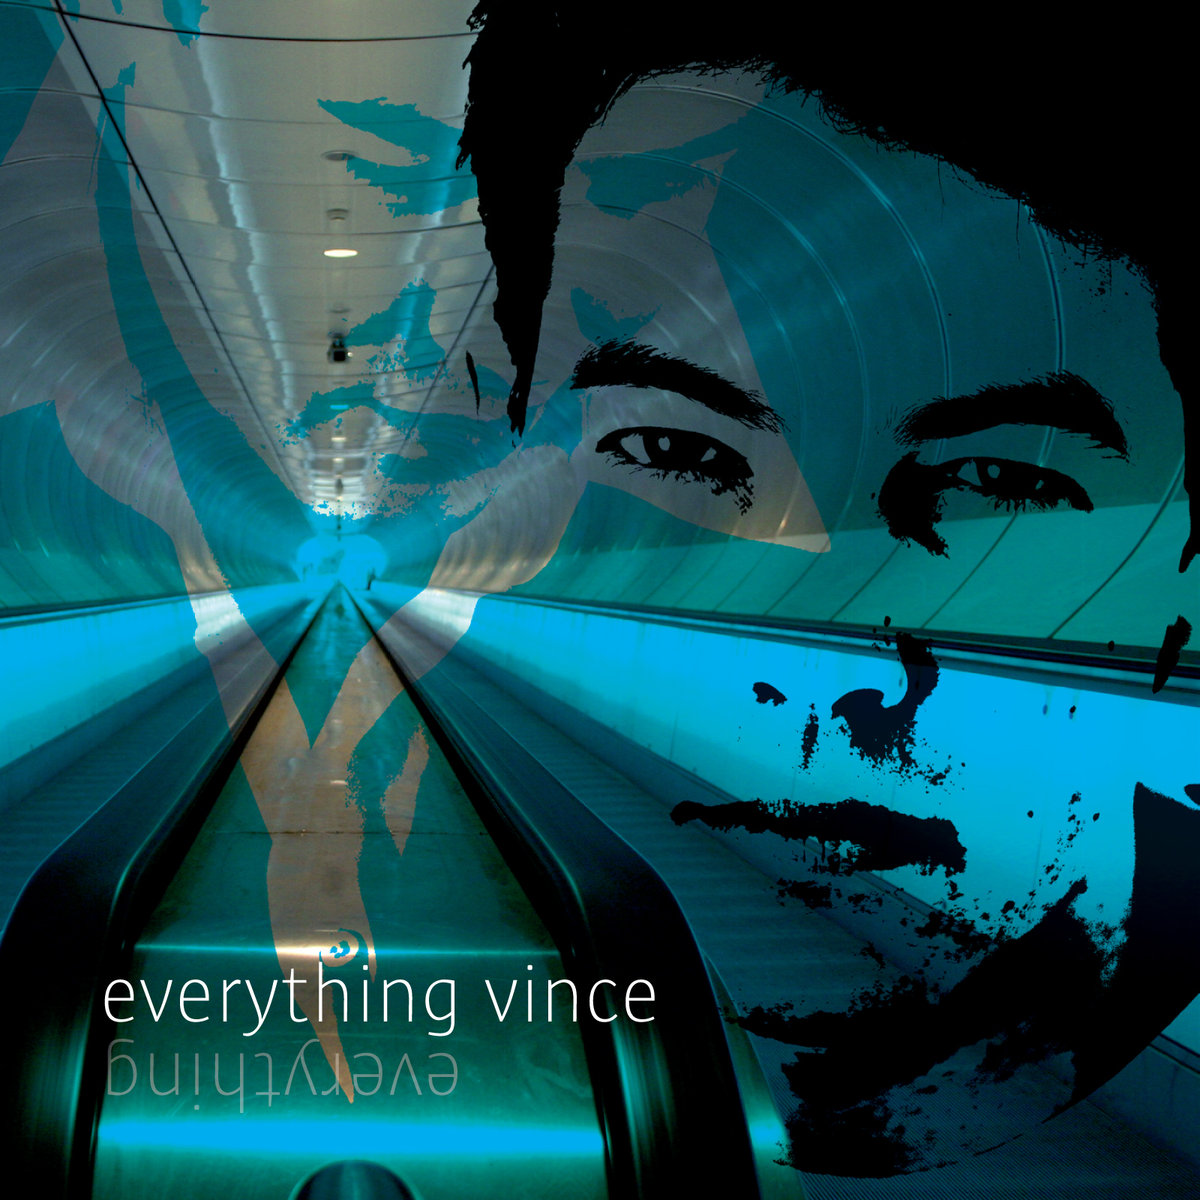 Vince - Everything @ 'Everything' album (pop, pop punk)